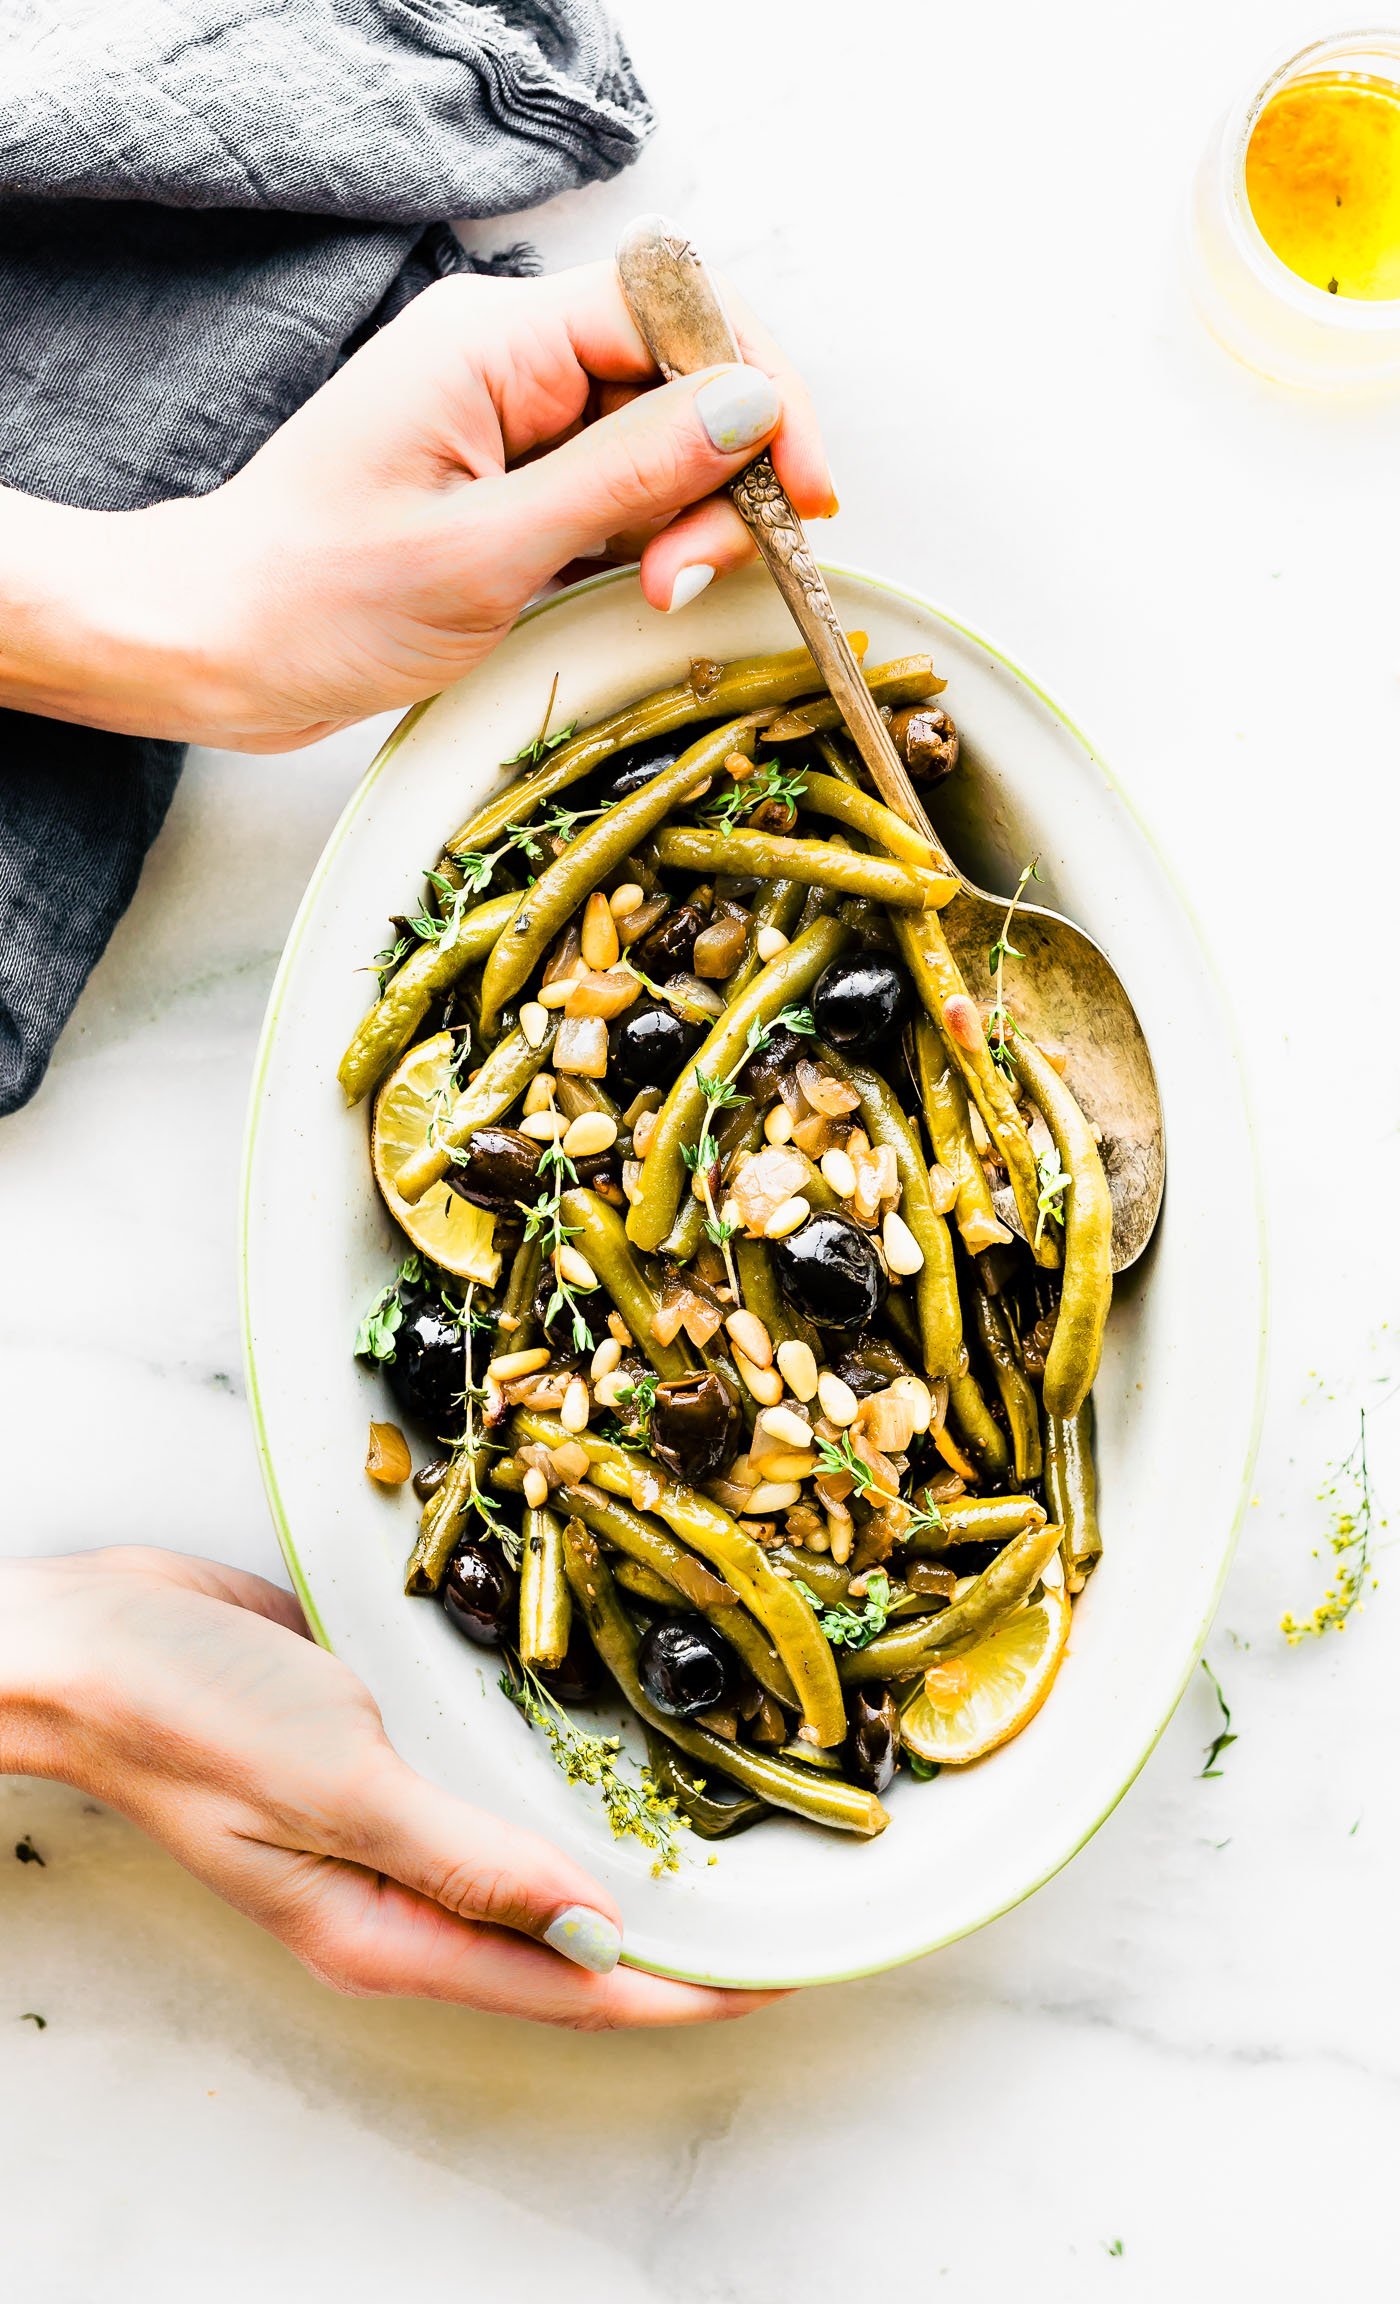 Balsamic Olive Oil Braised Green Beans